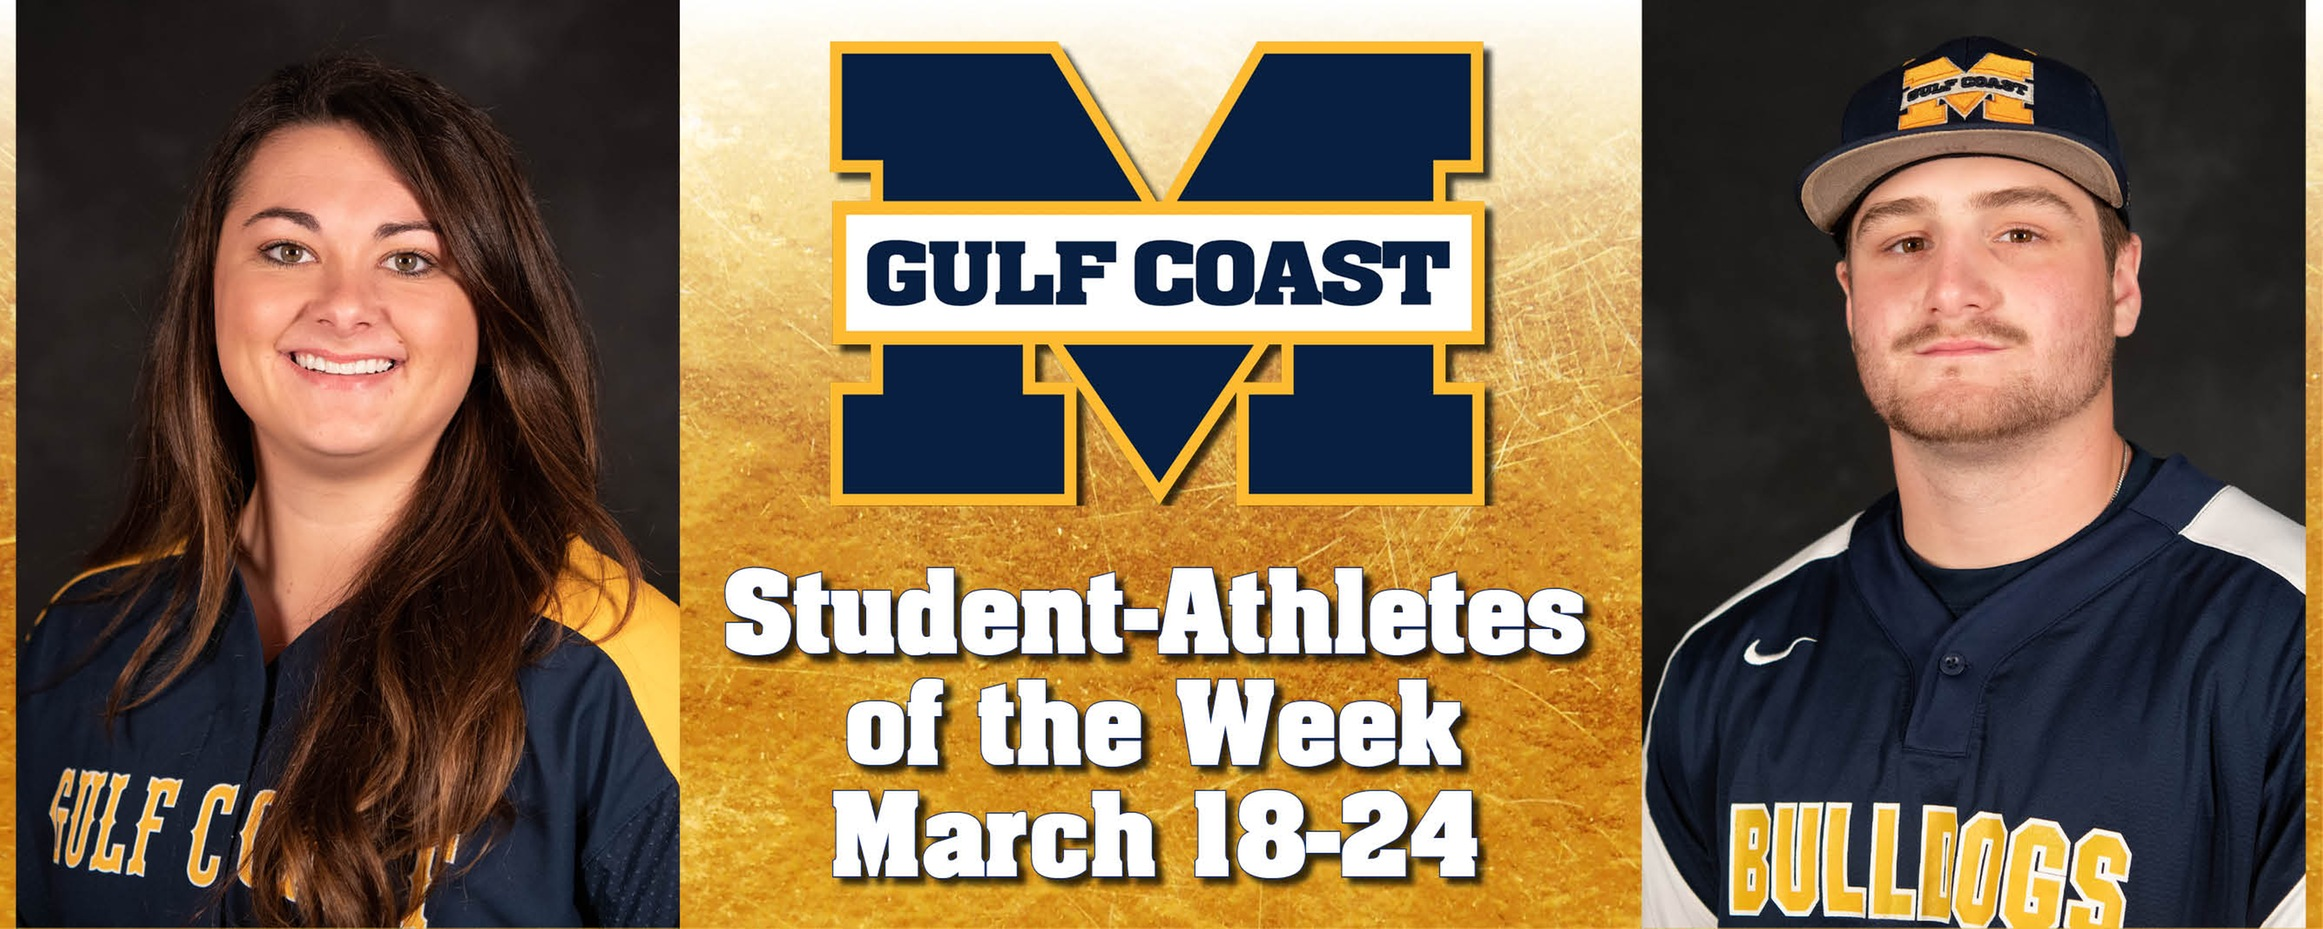 Williams, Davis named MGCCC Student-Athletes of the Week